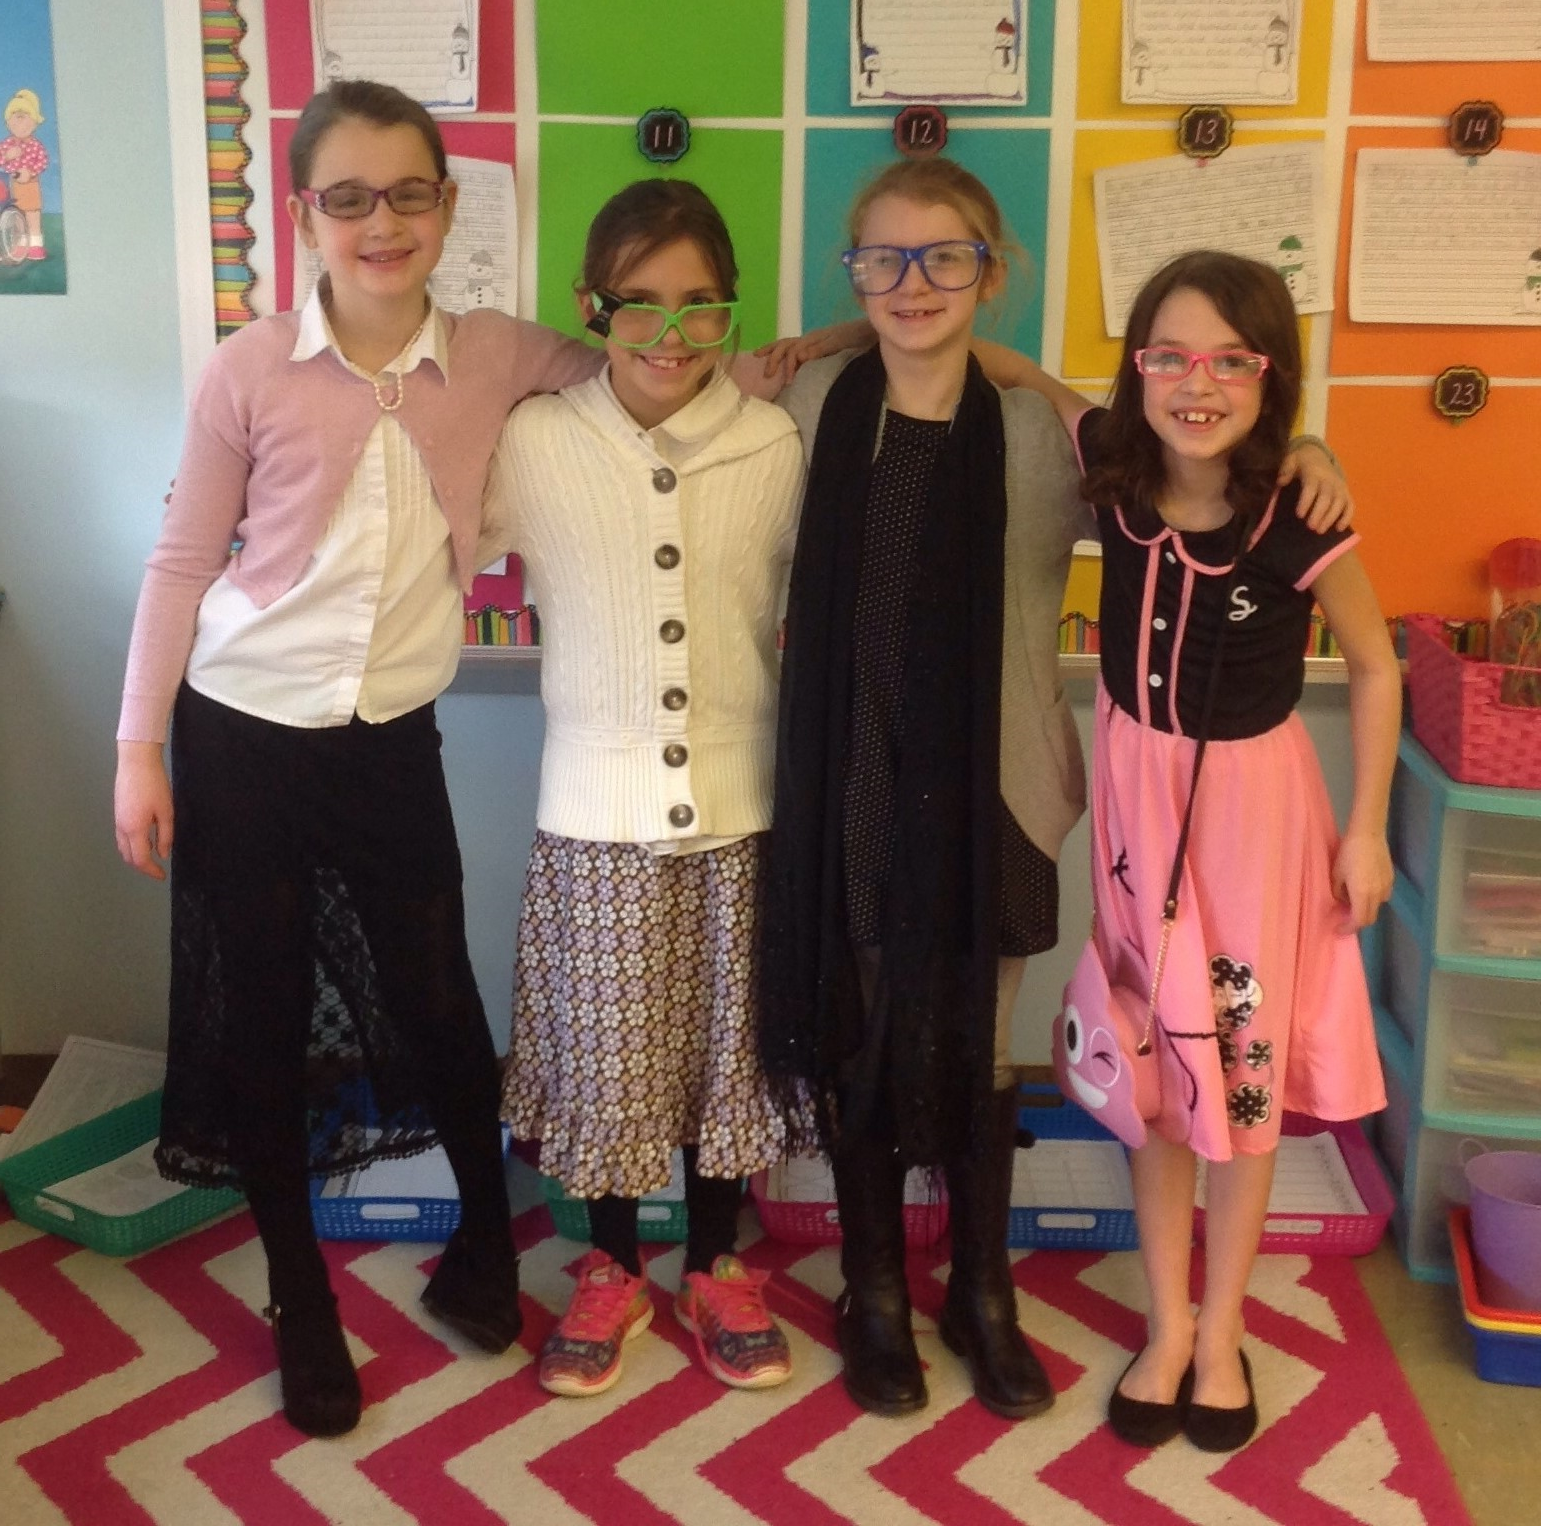 2B is celebrating the 101th day of school